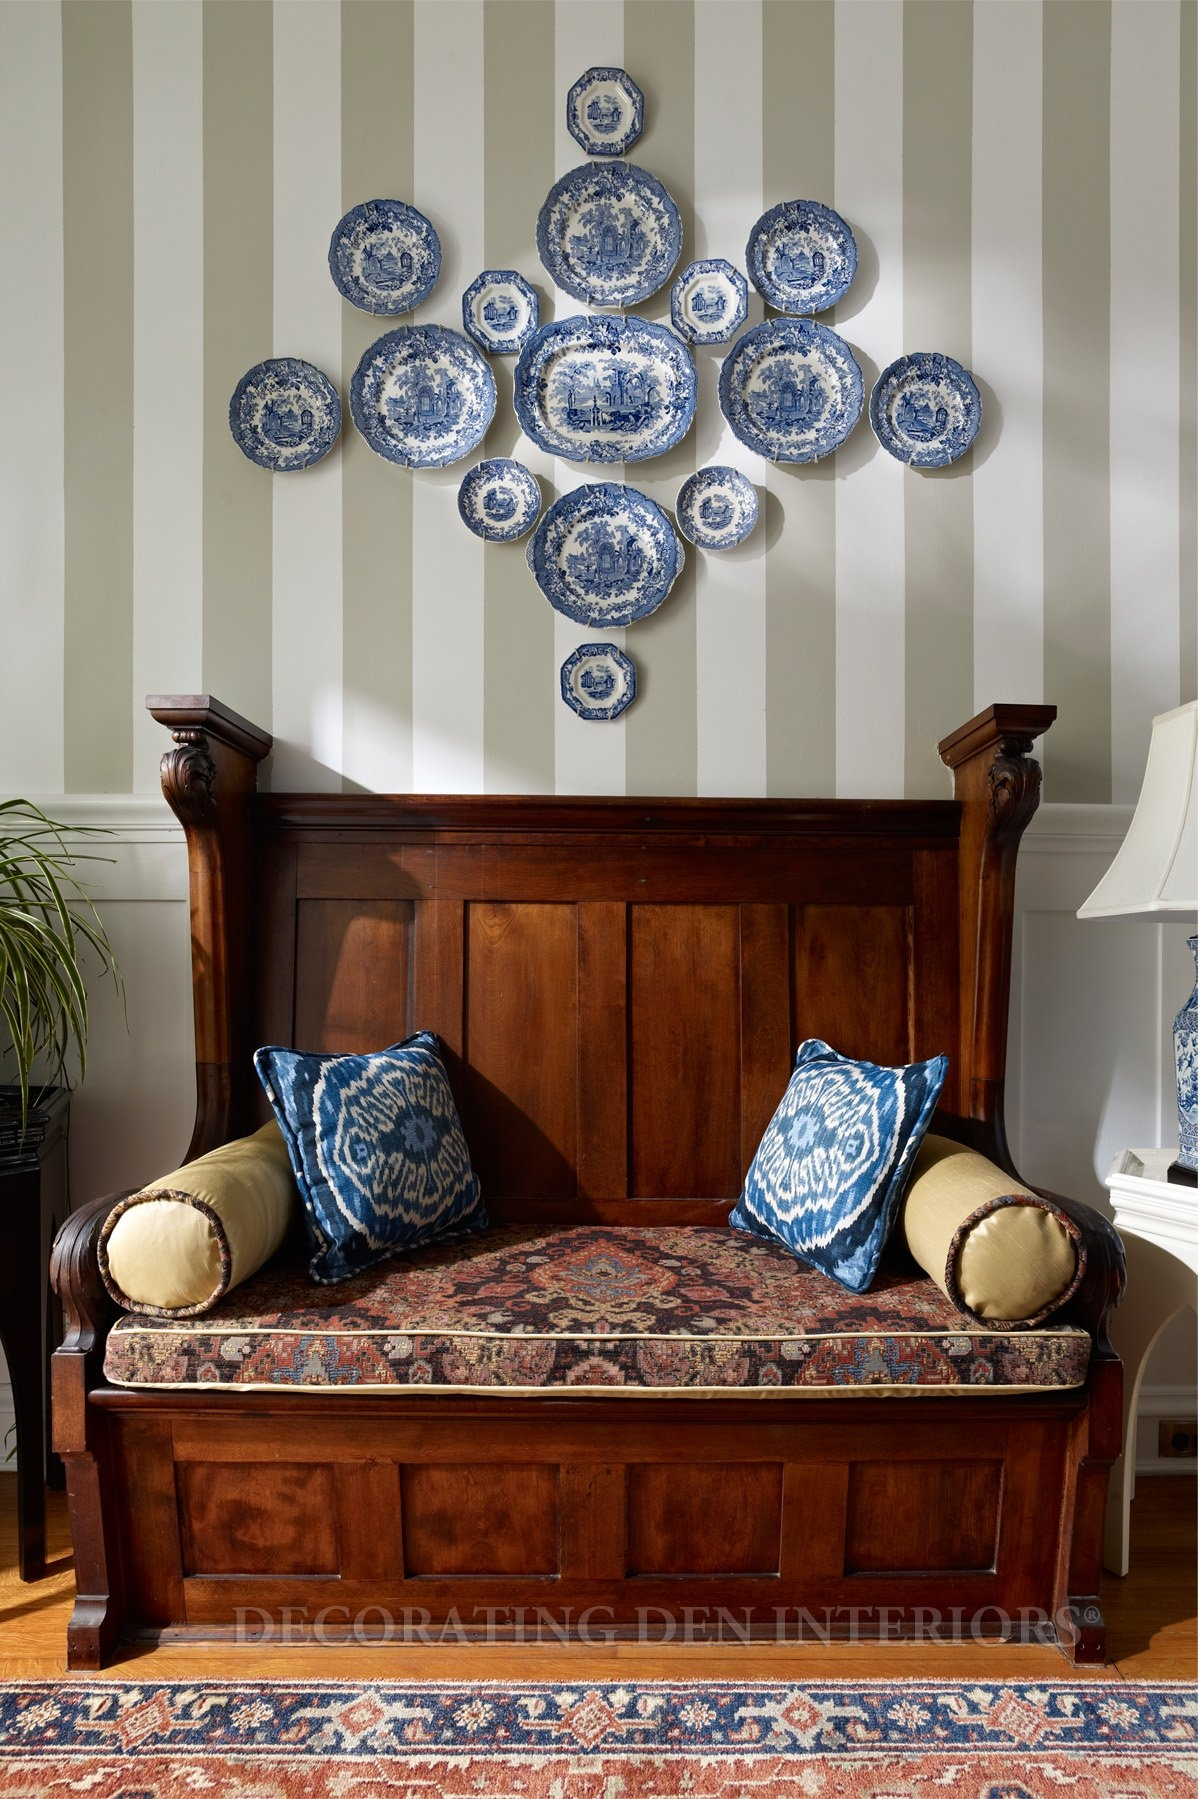 Wood furniture shopping tips to know before you buy for Wall decor dishes